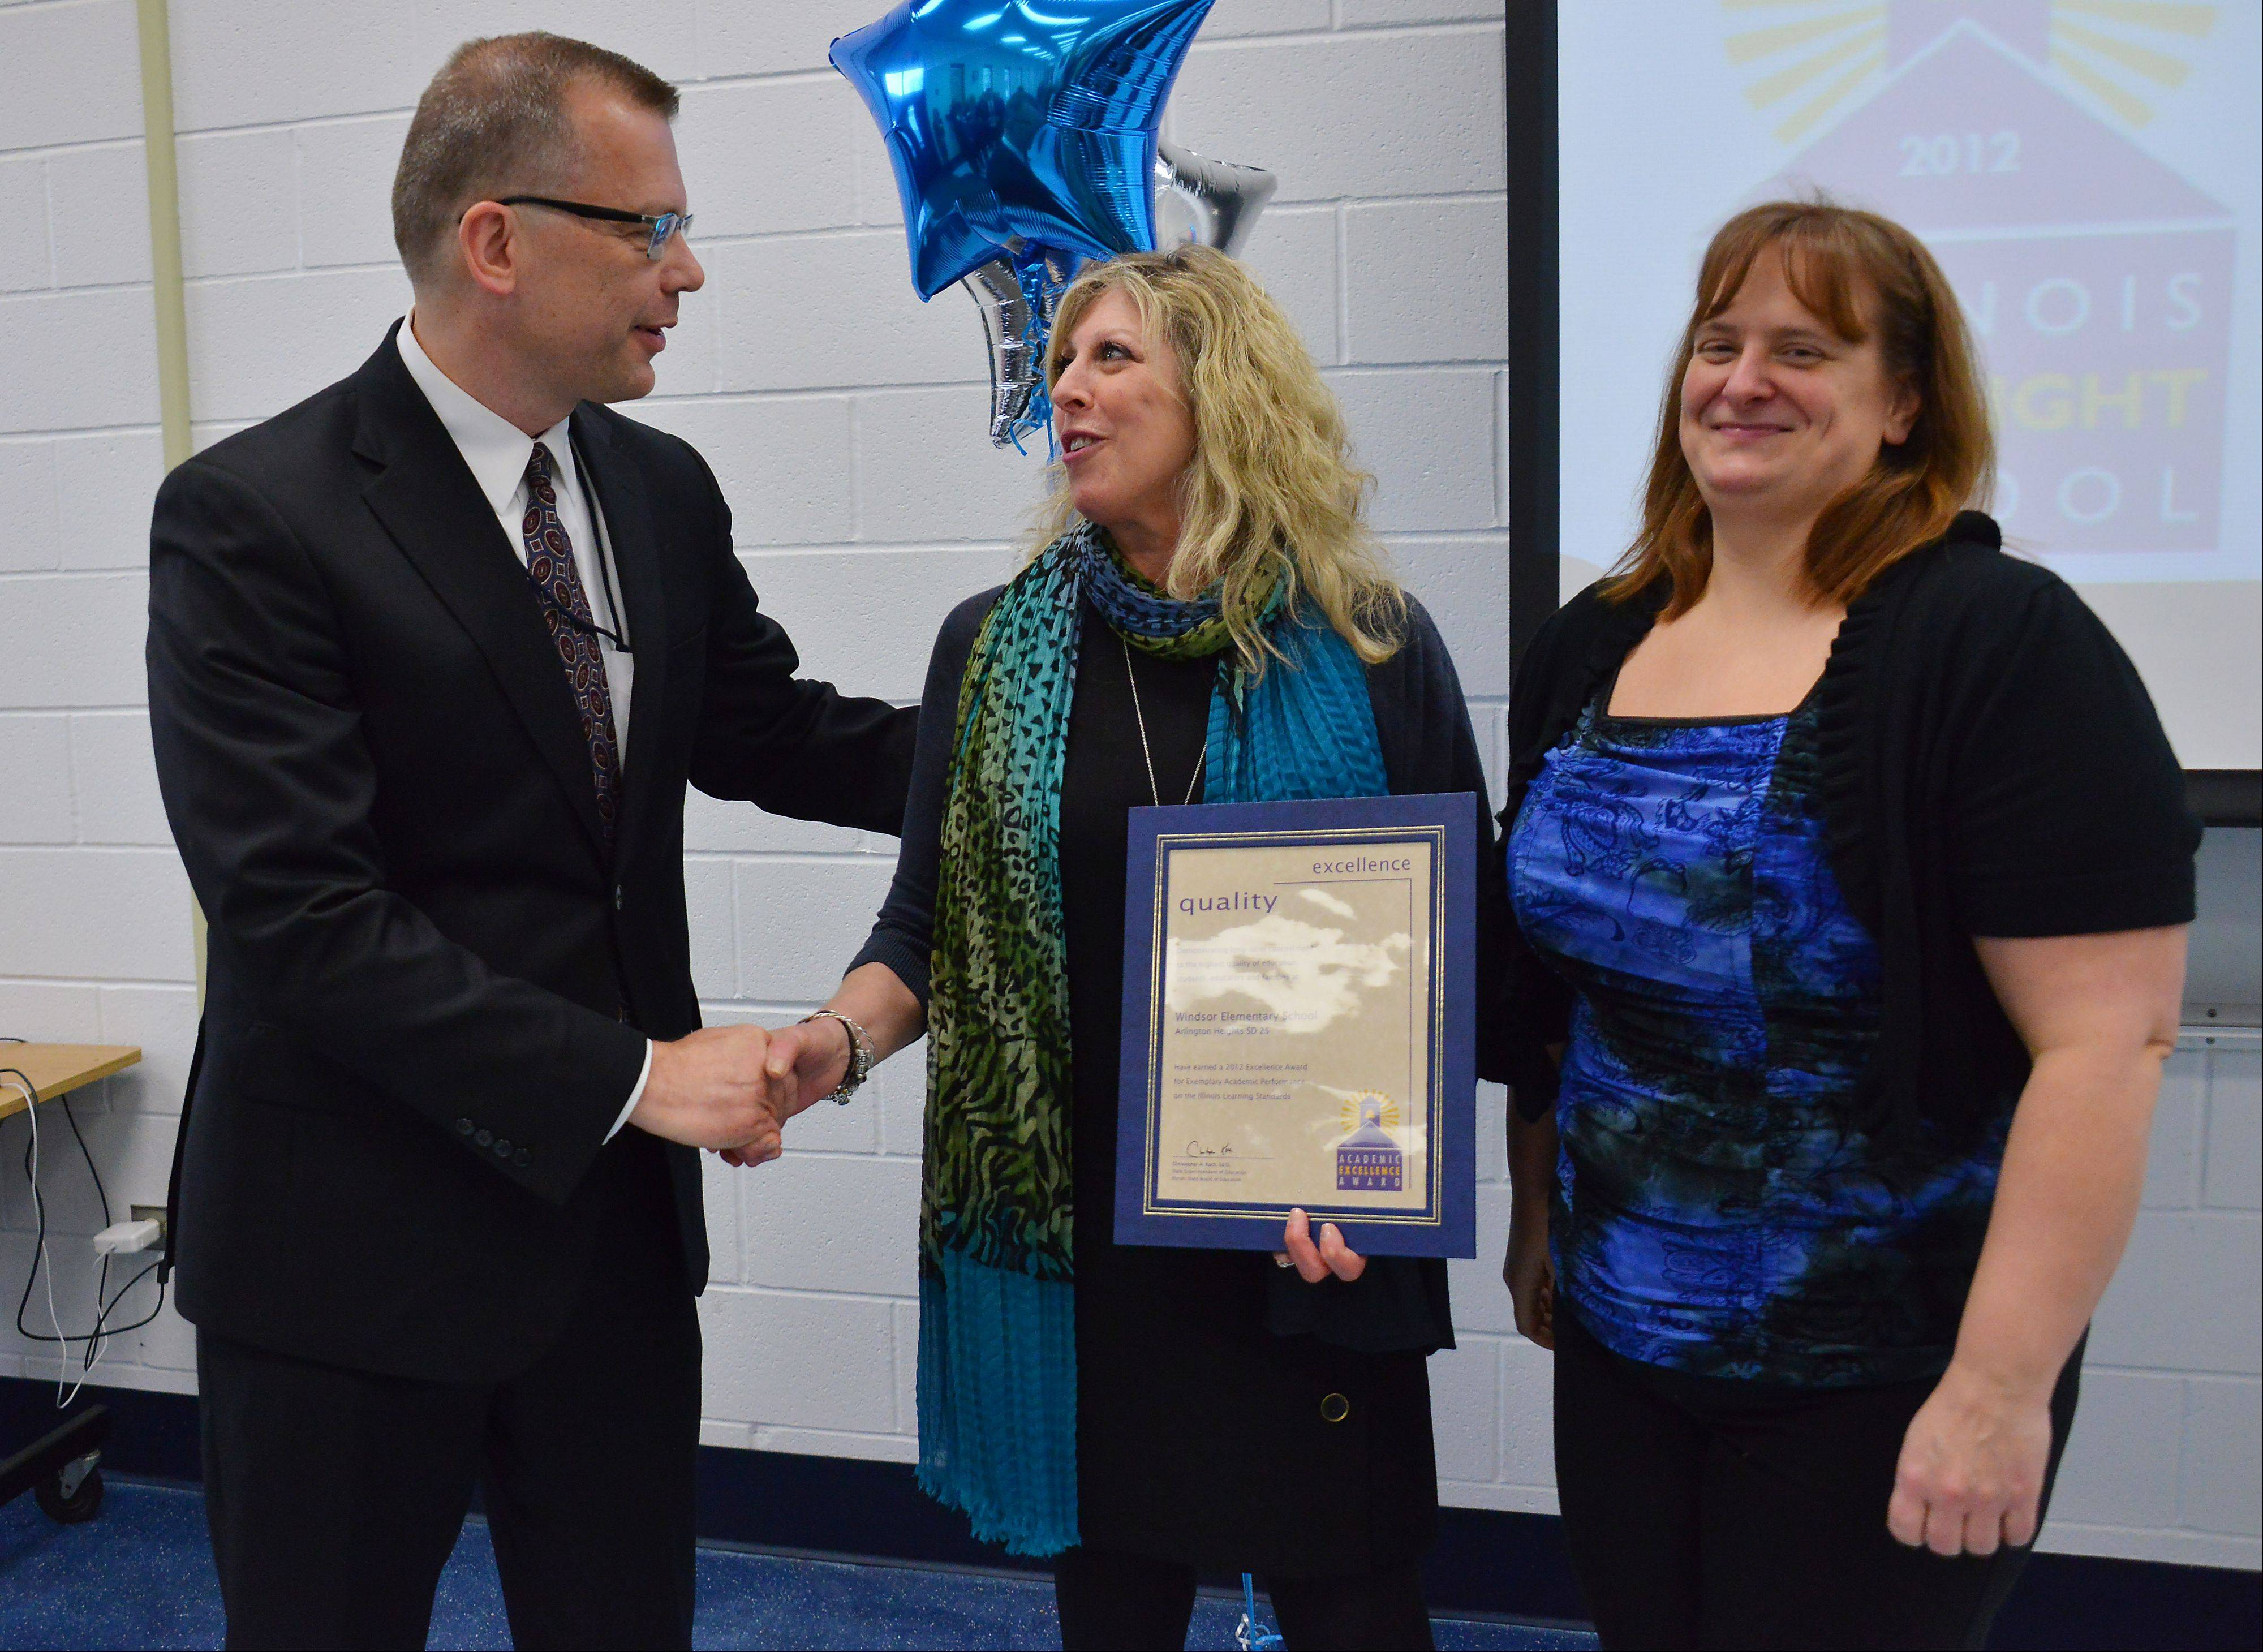 Shelly Fabrizio and Amy Pinski of Arlington Heights District 25's Windsor Elementary School received the Academic Excellence Award from State Superintendent Christopher Koch. Several awards were presented Monday at John Jay Elementary School in Mount Prospect.